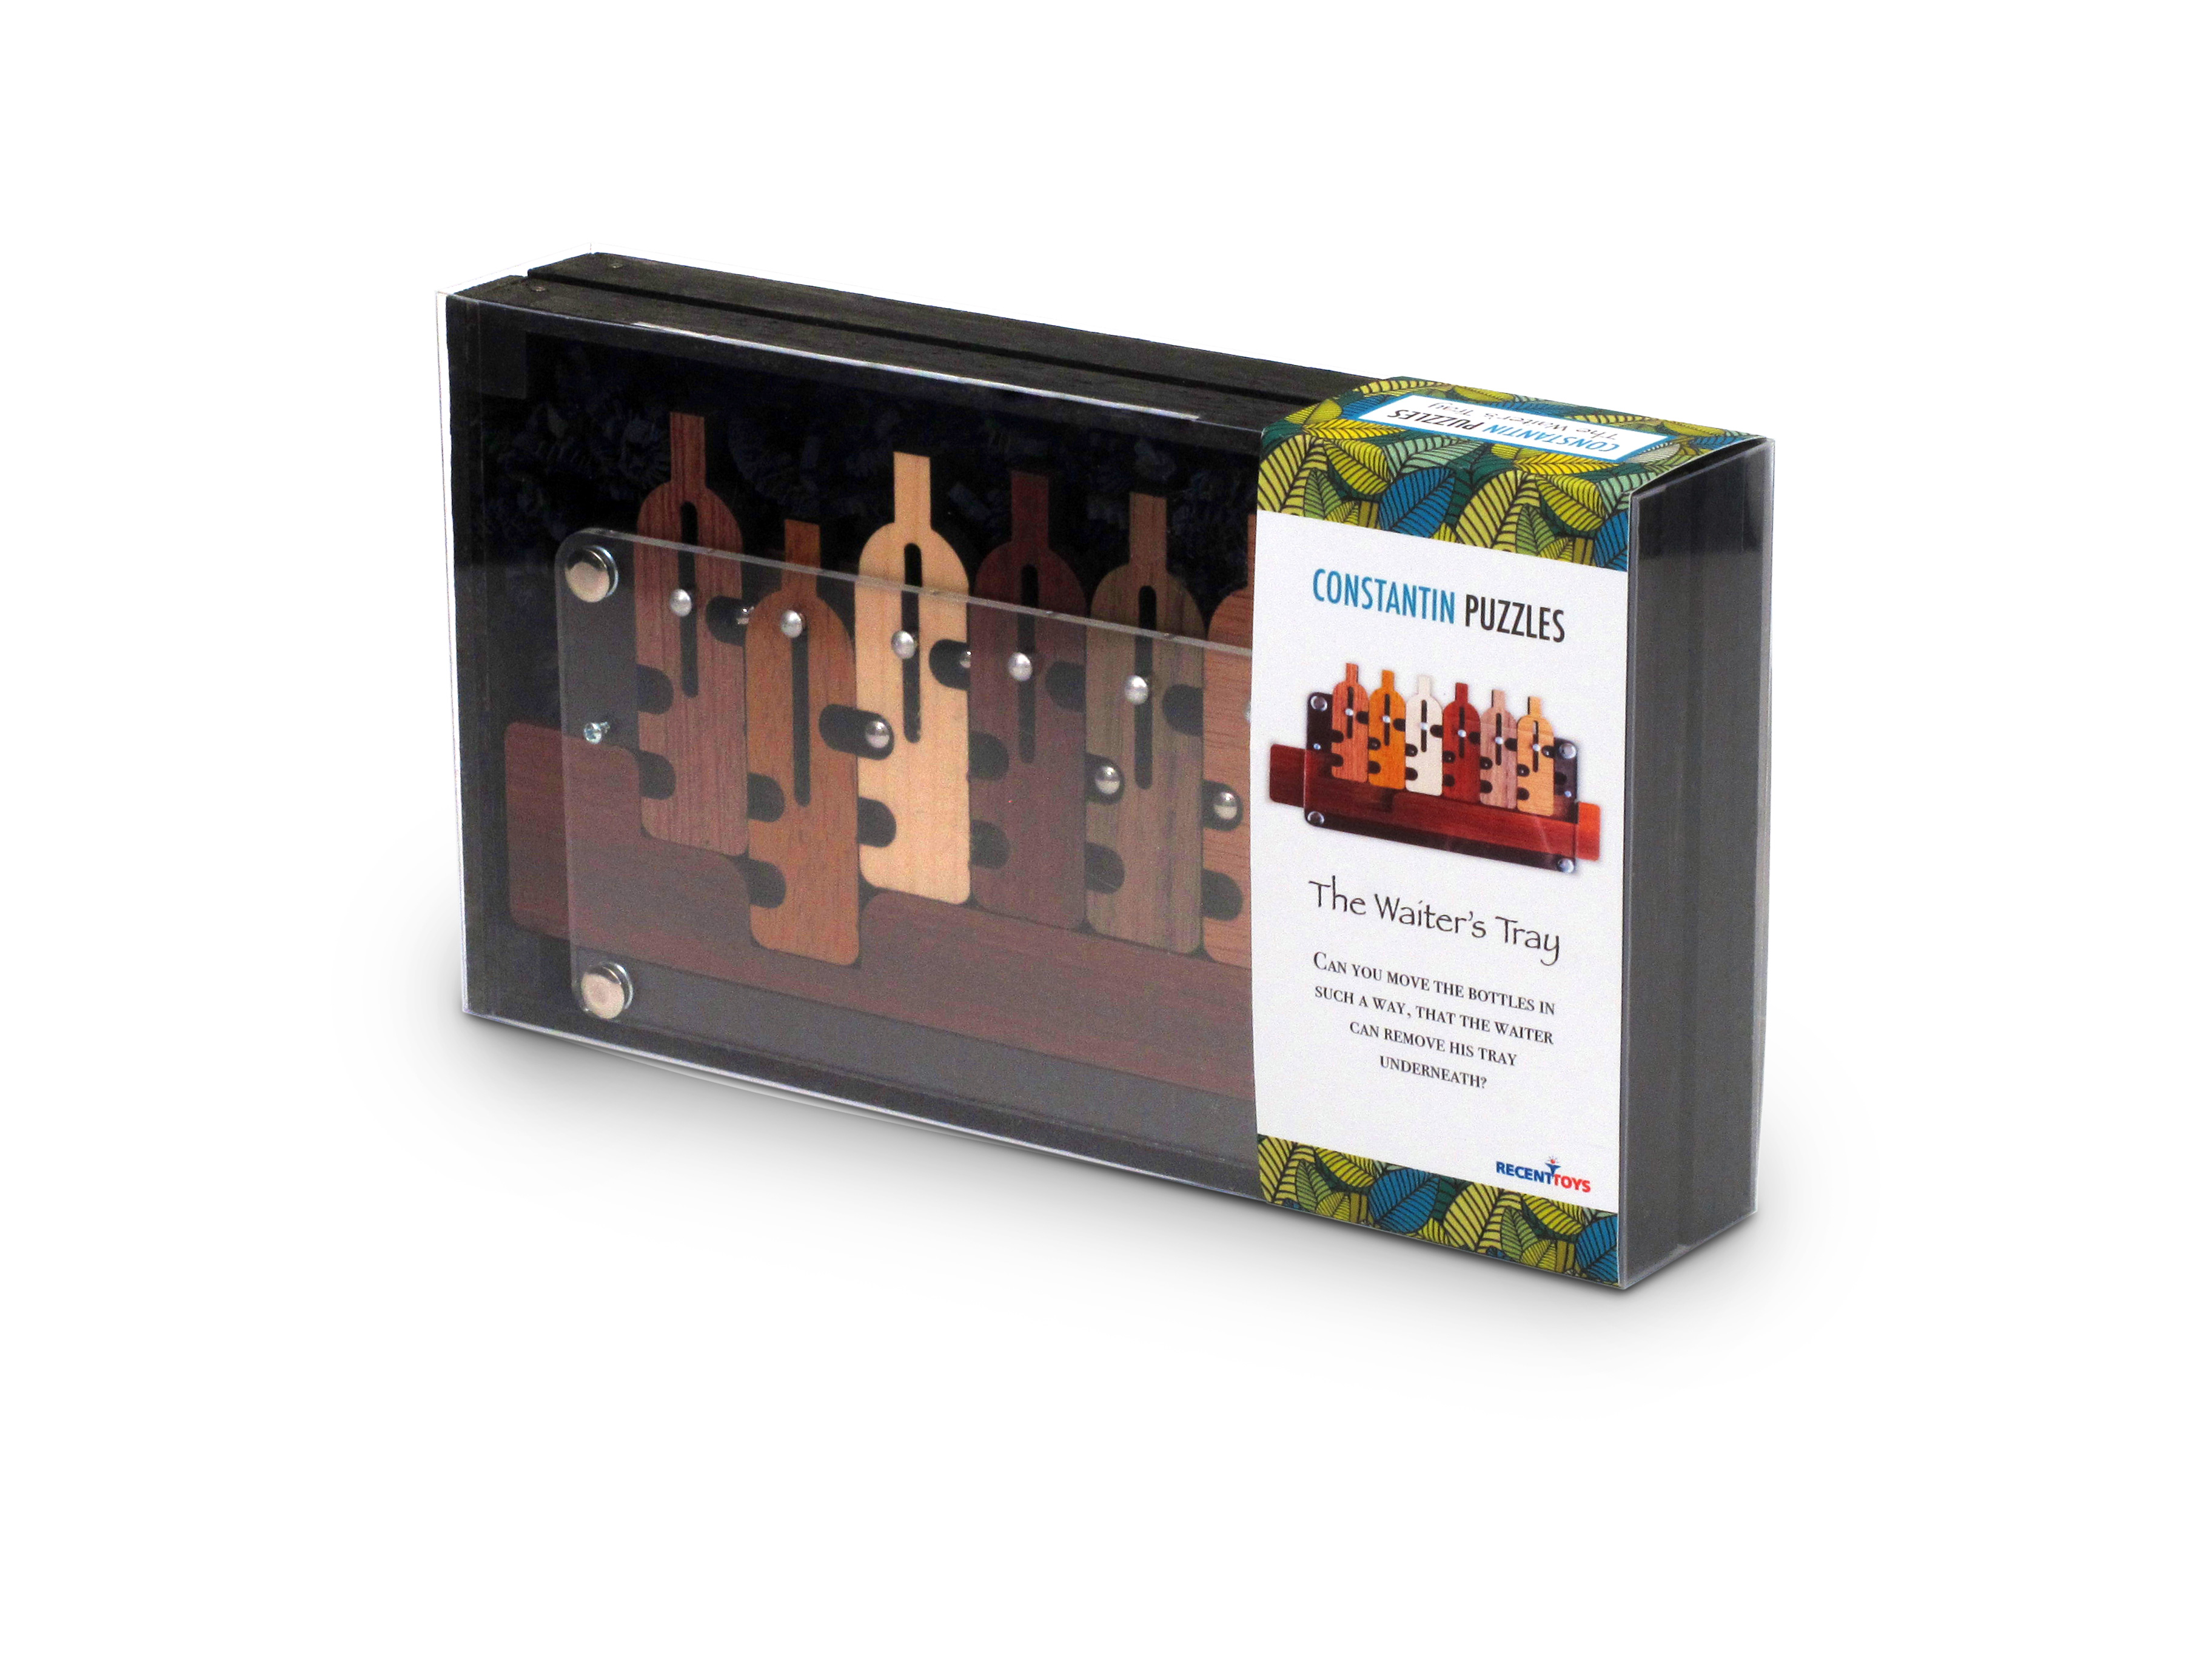 RecentToys - The Waiter's Tray - Constantin - Recent Toys -Packaging